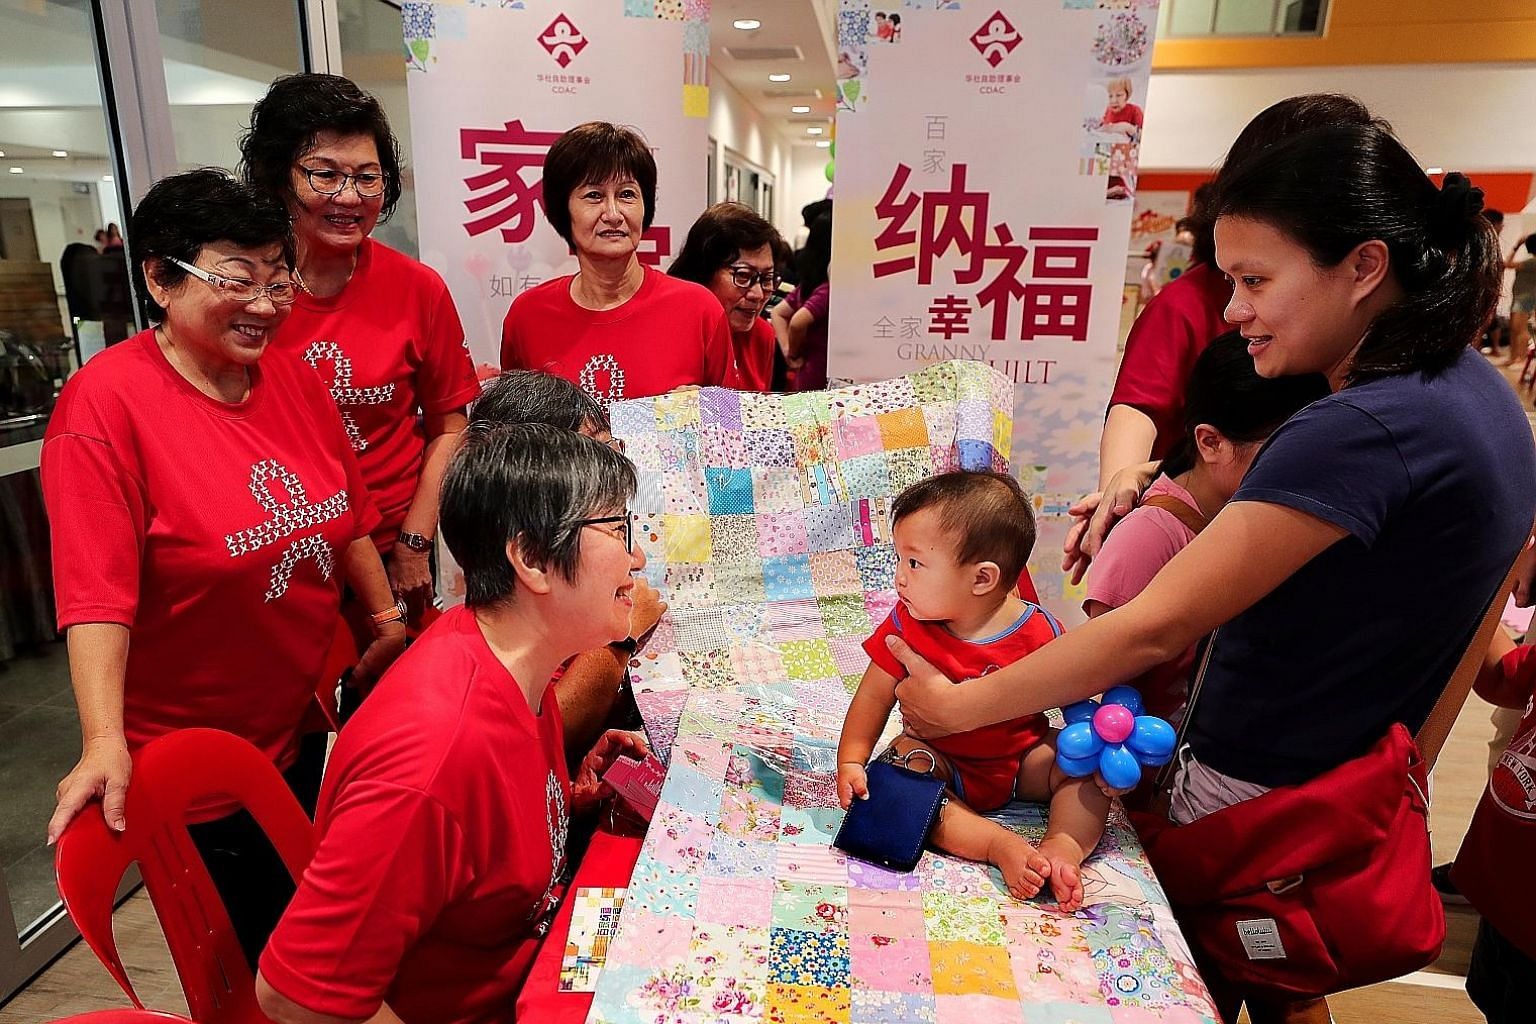 Housewife Amy Loh (right), 35, with her seven-month-old baby, Ajay Tan, at the booth of the Granny Quilt Project at Radin Mas Community Club yesterday. The Chinese Development Assistance Council (CDAC) piloted the Granny Quilt Project in August last